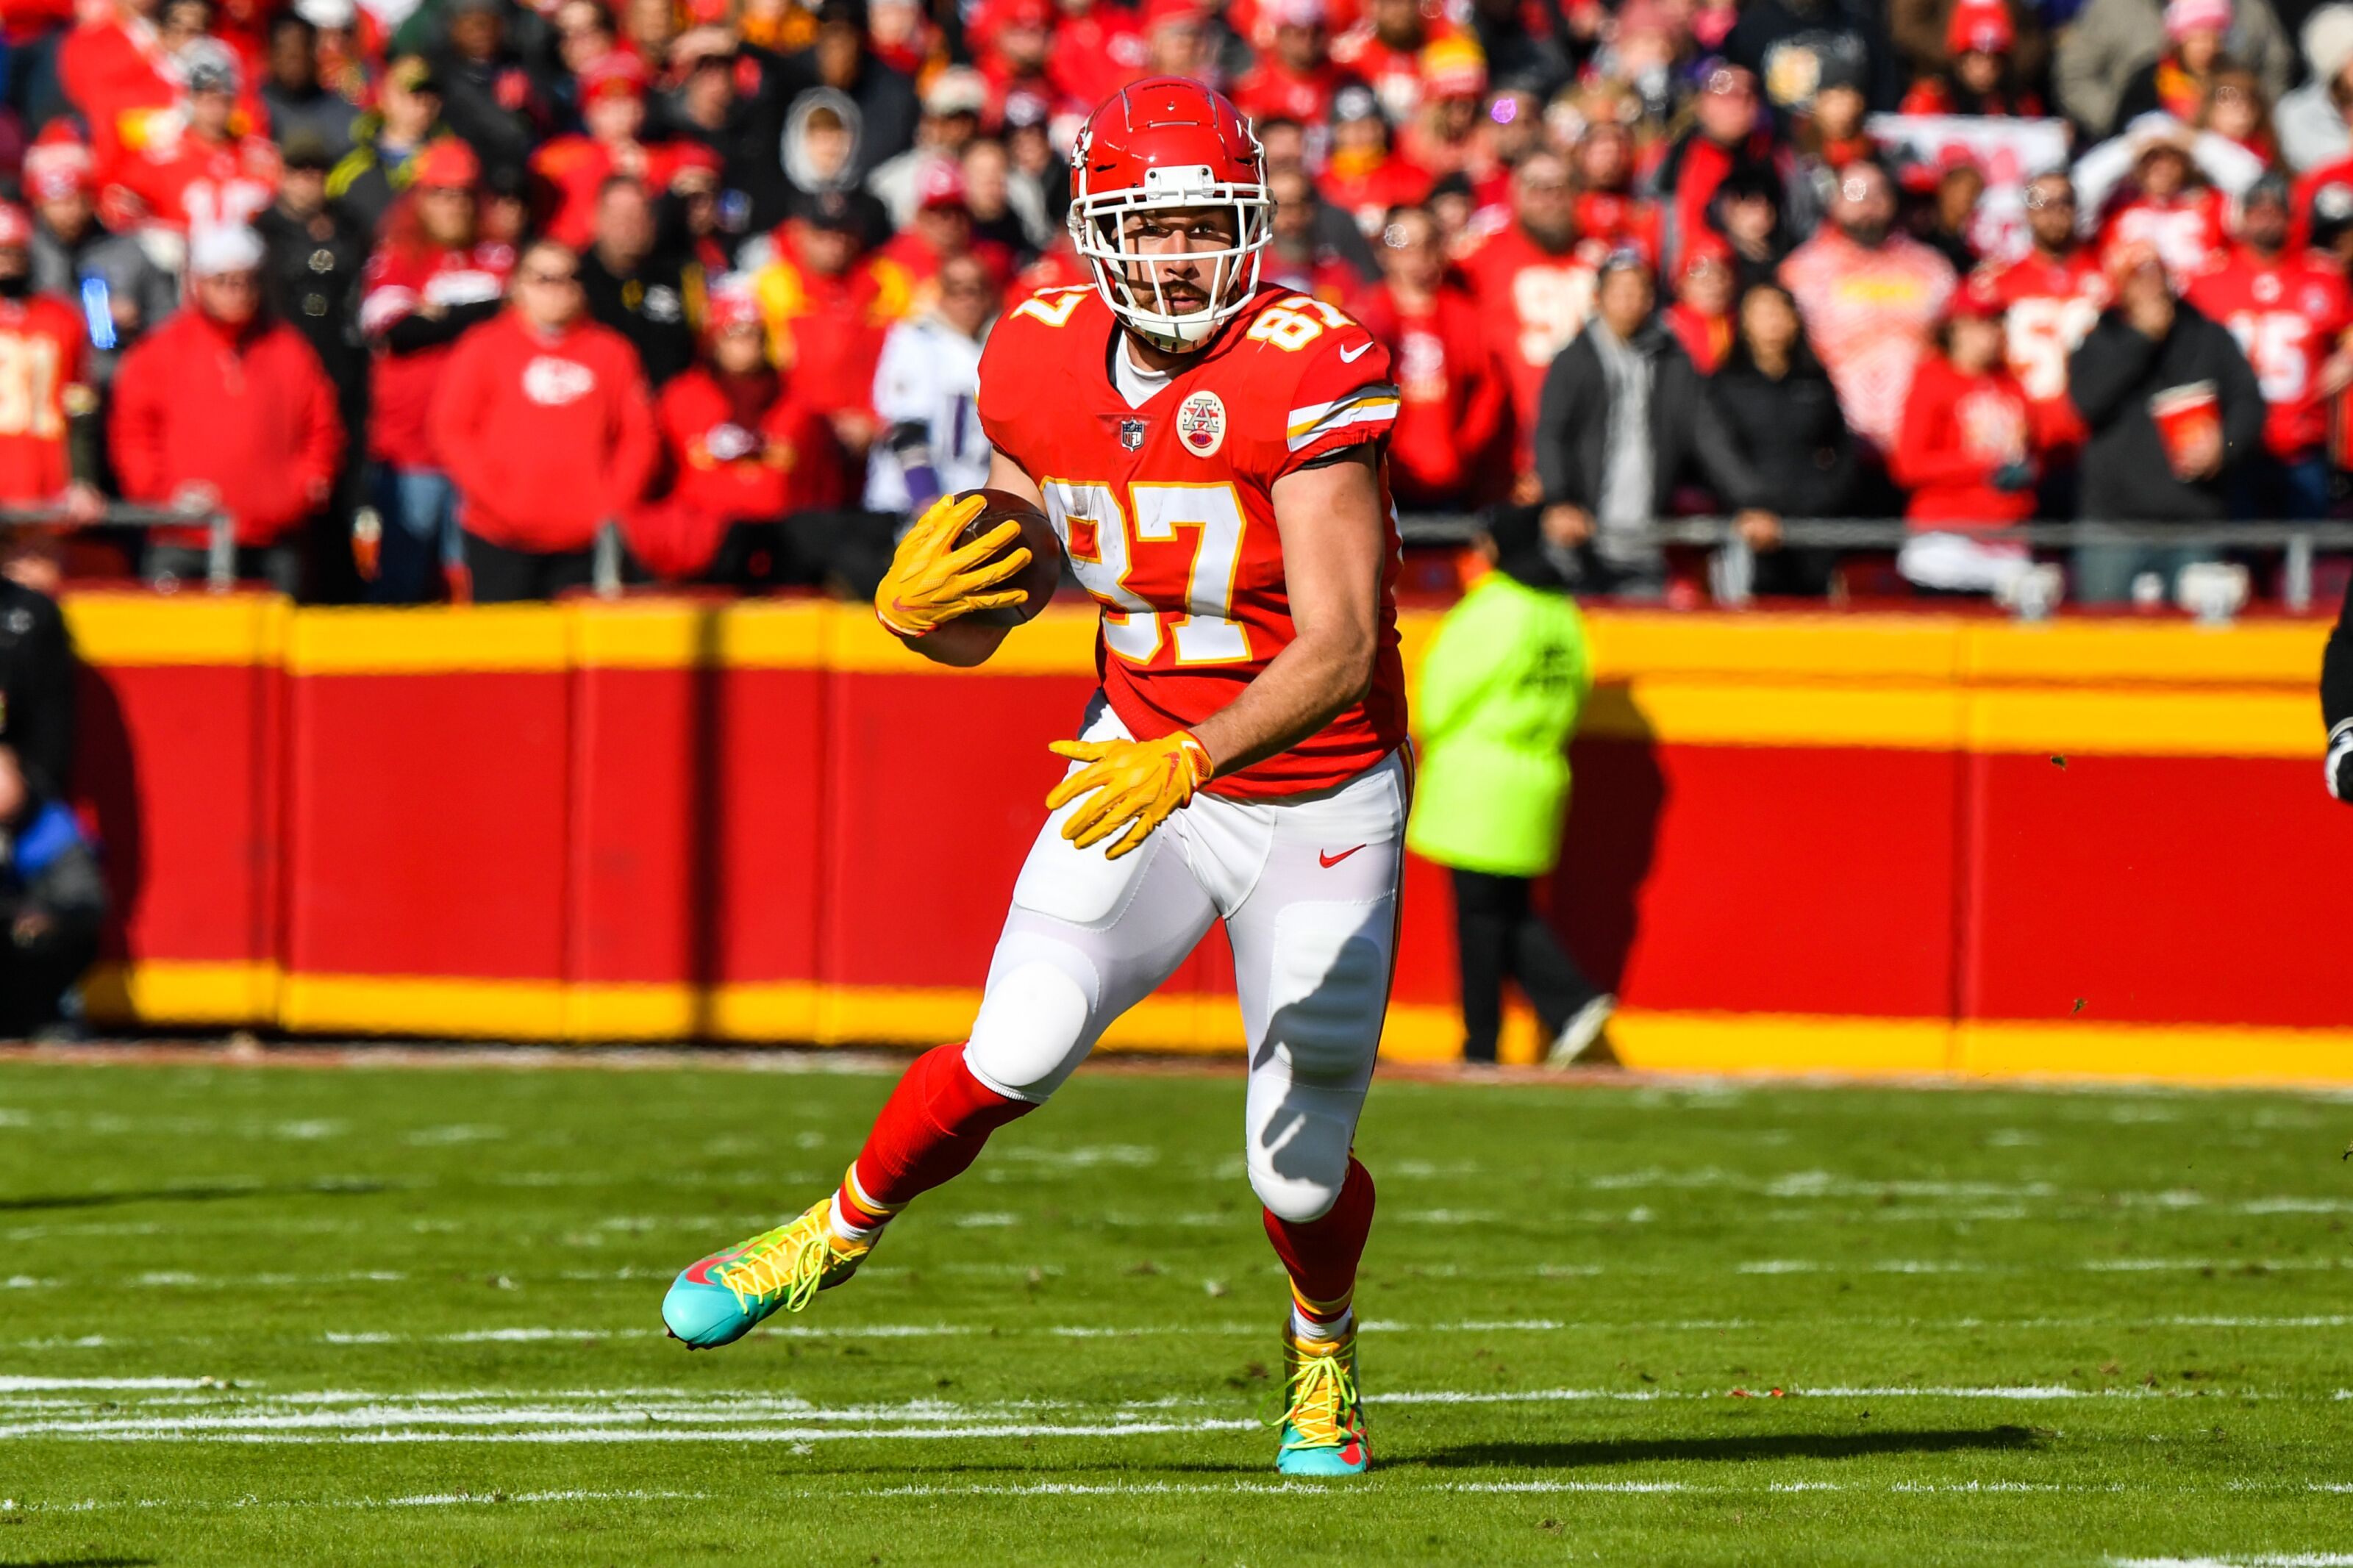 Nfl Draftkings Thursday Night Showdown Travis Kelce Is The Top Play